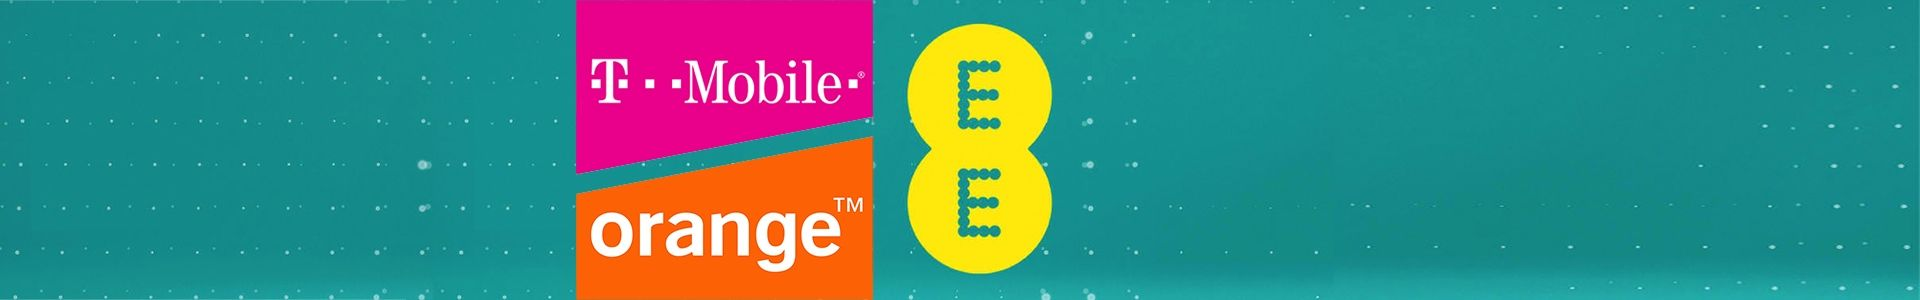 EE T-Mobile